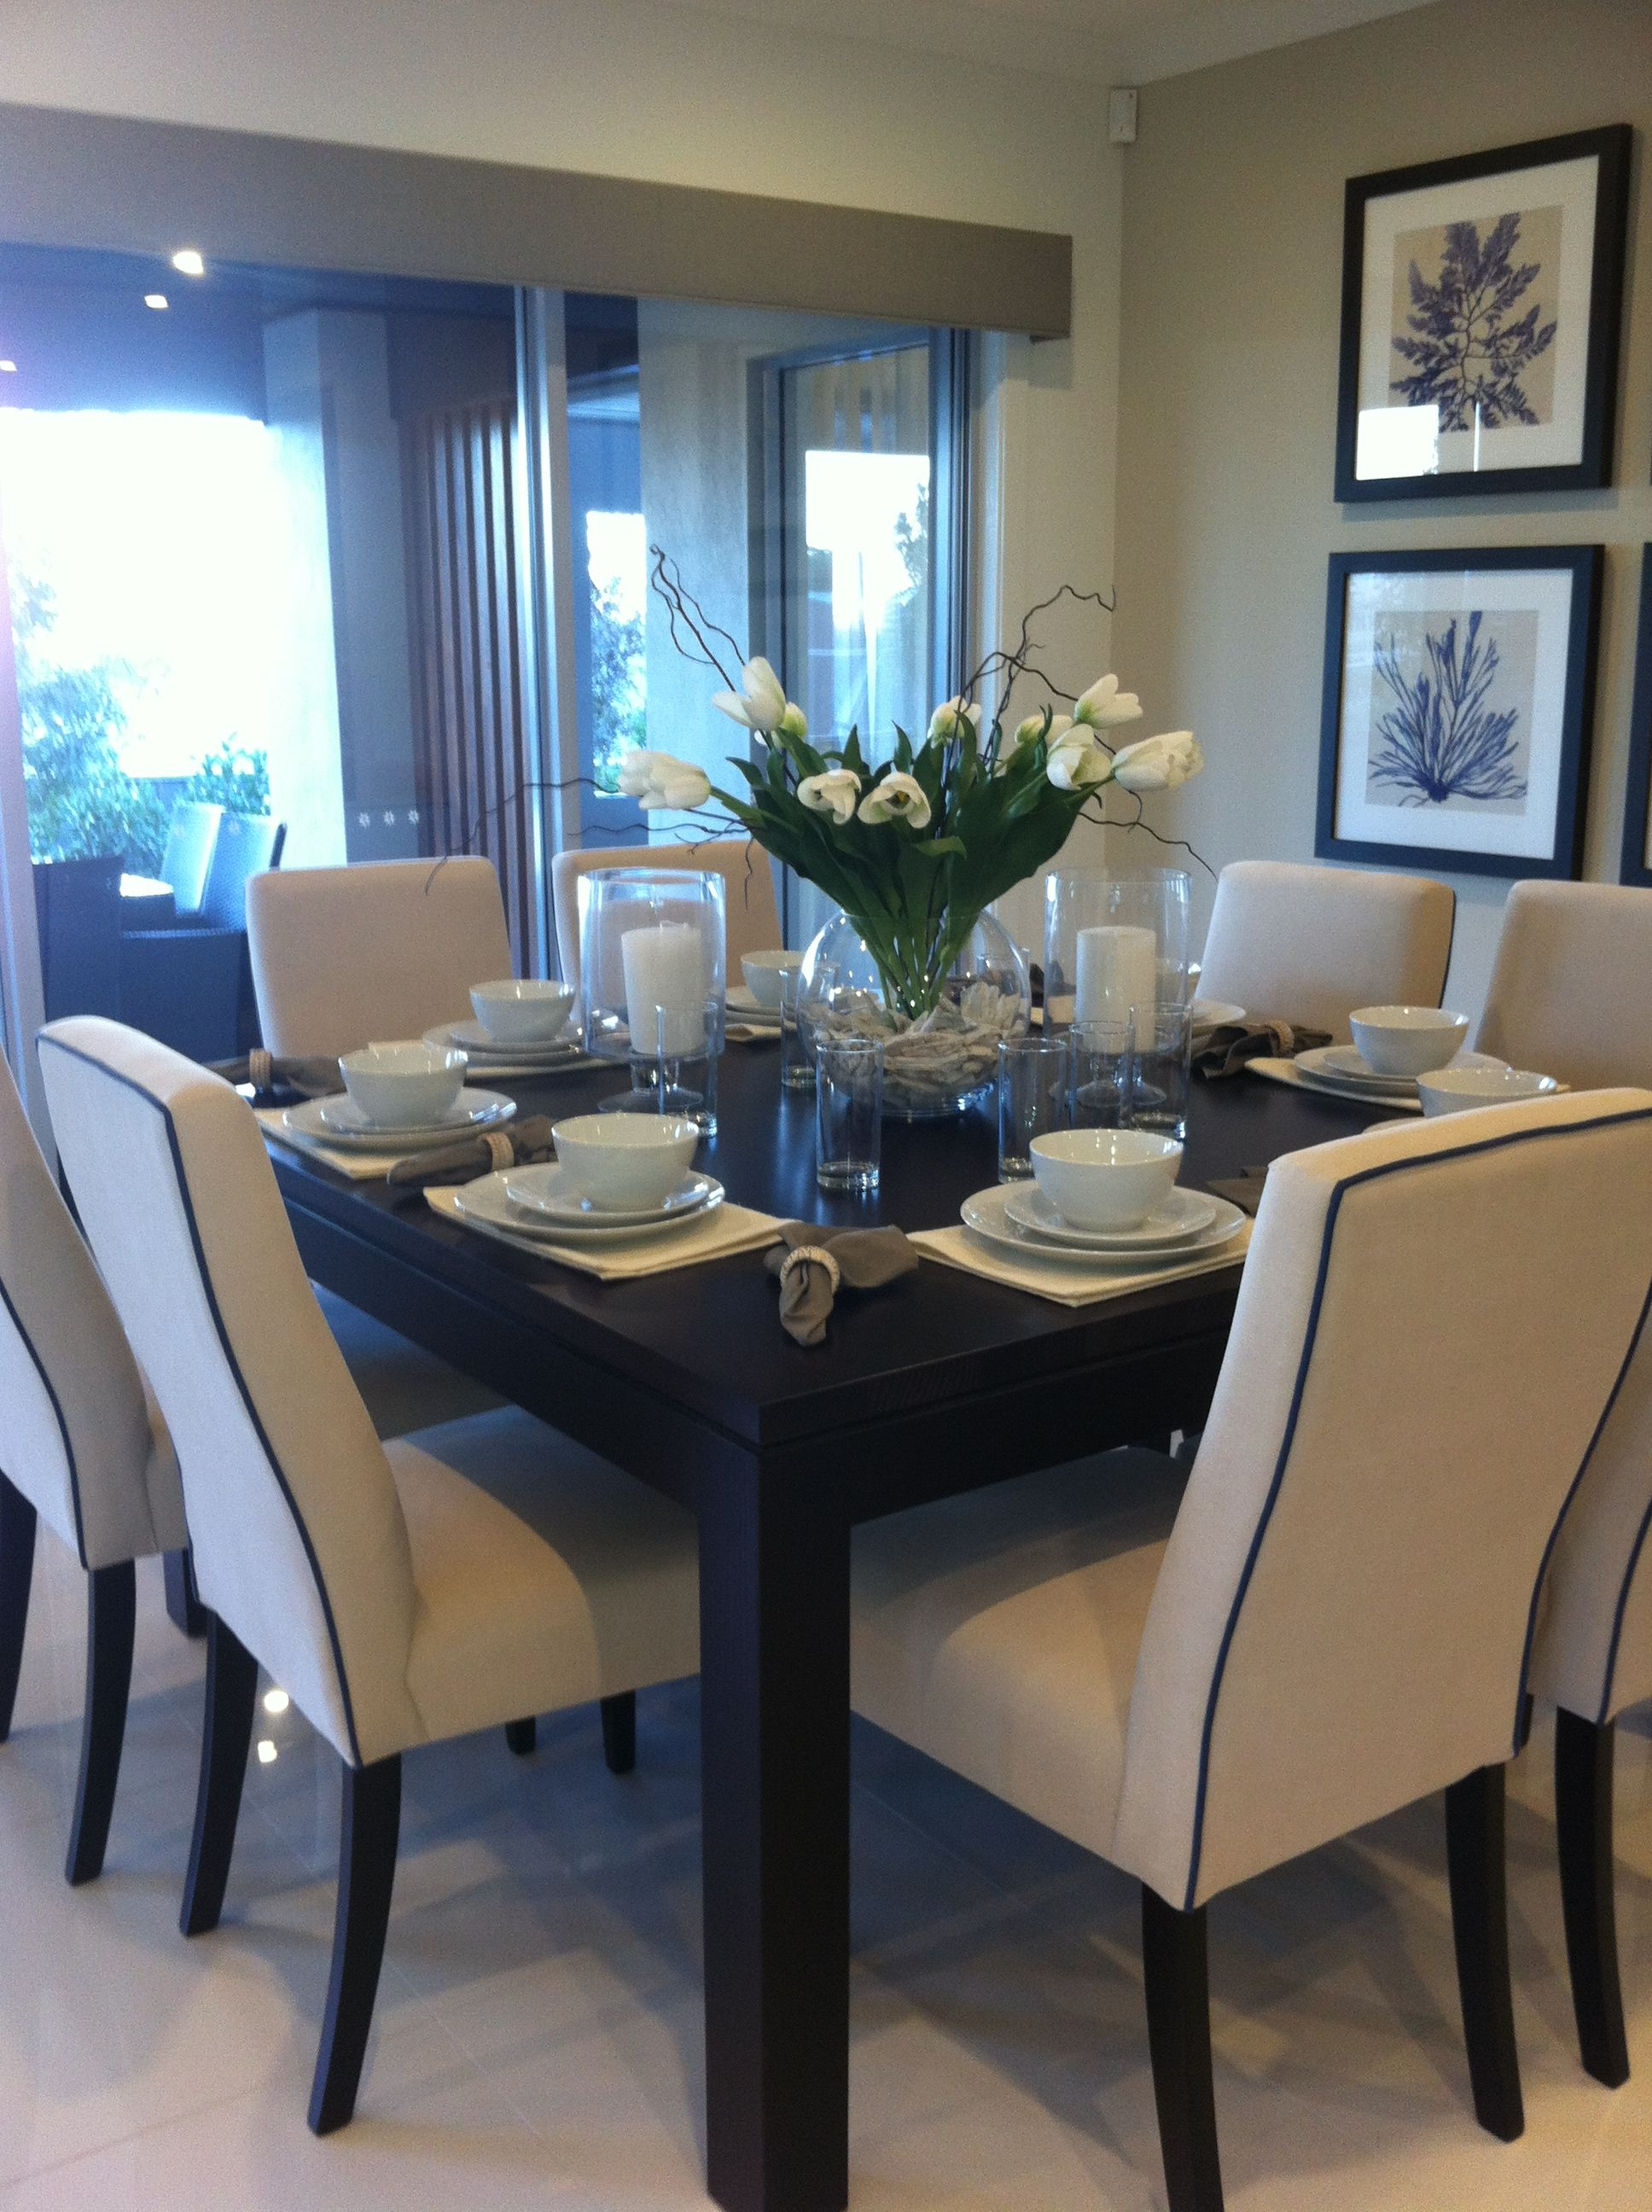 Staging The Dining Room, How To Stage Your Dining Room Table